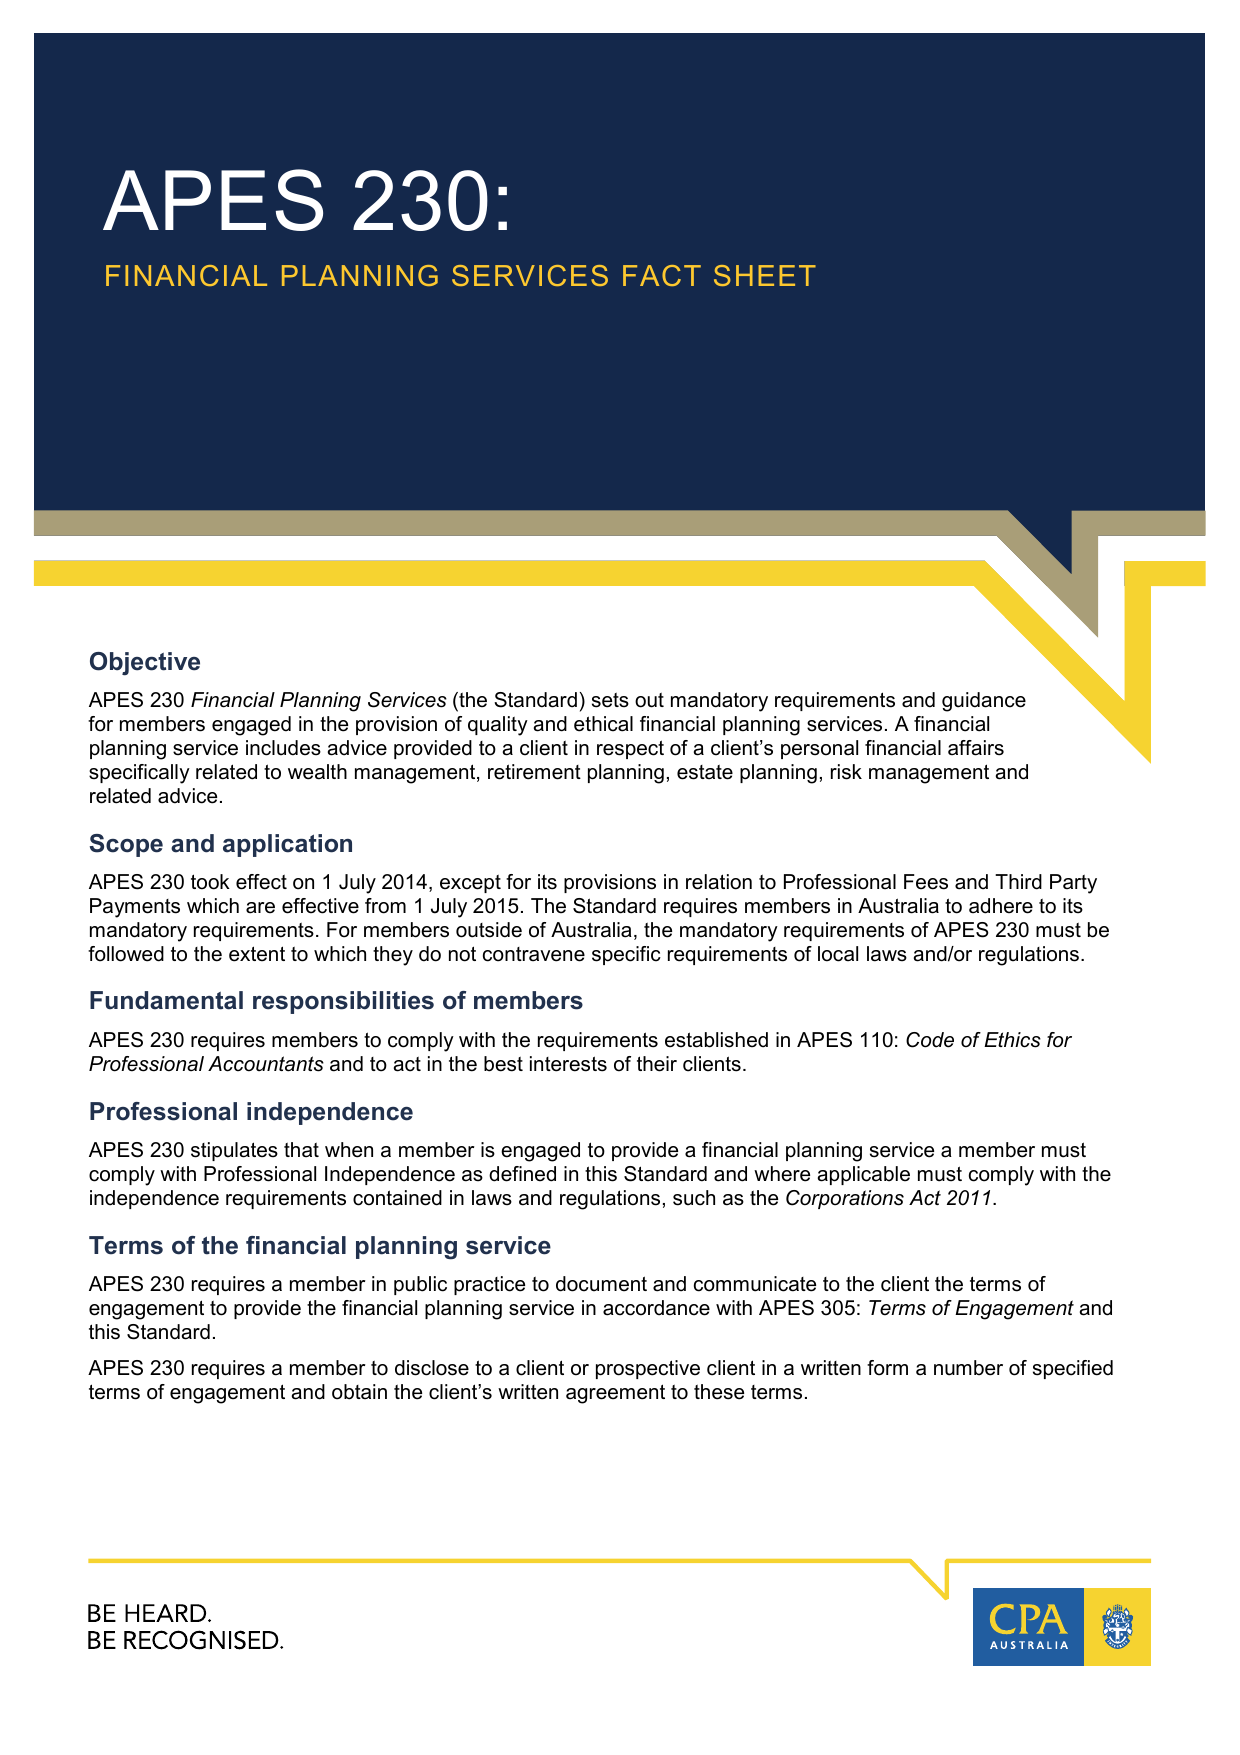 APES 230: Financial Planning Services Fact Sheet